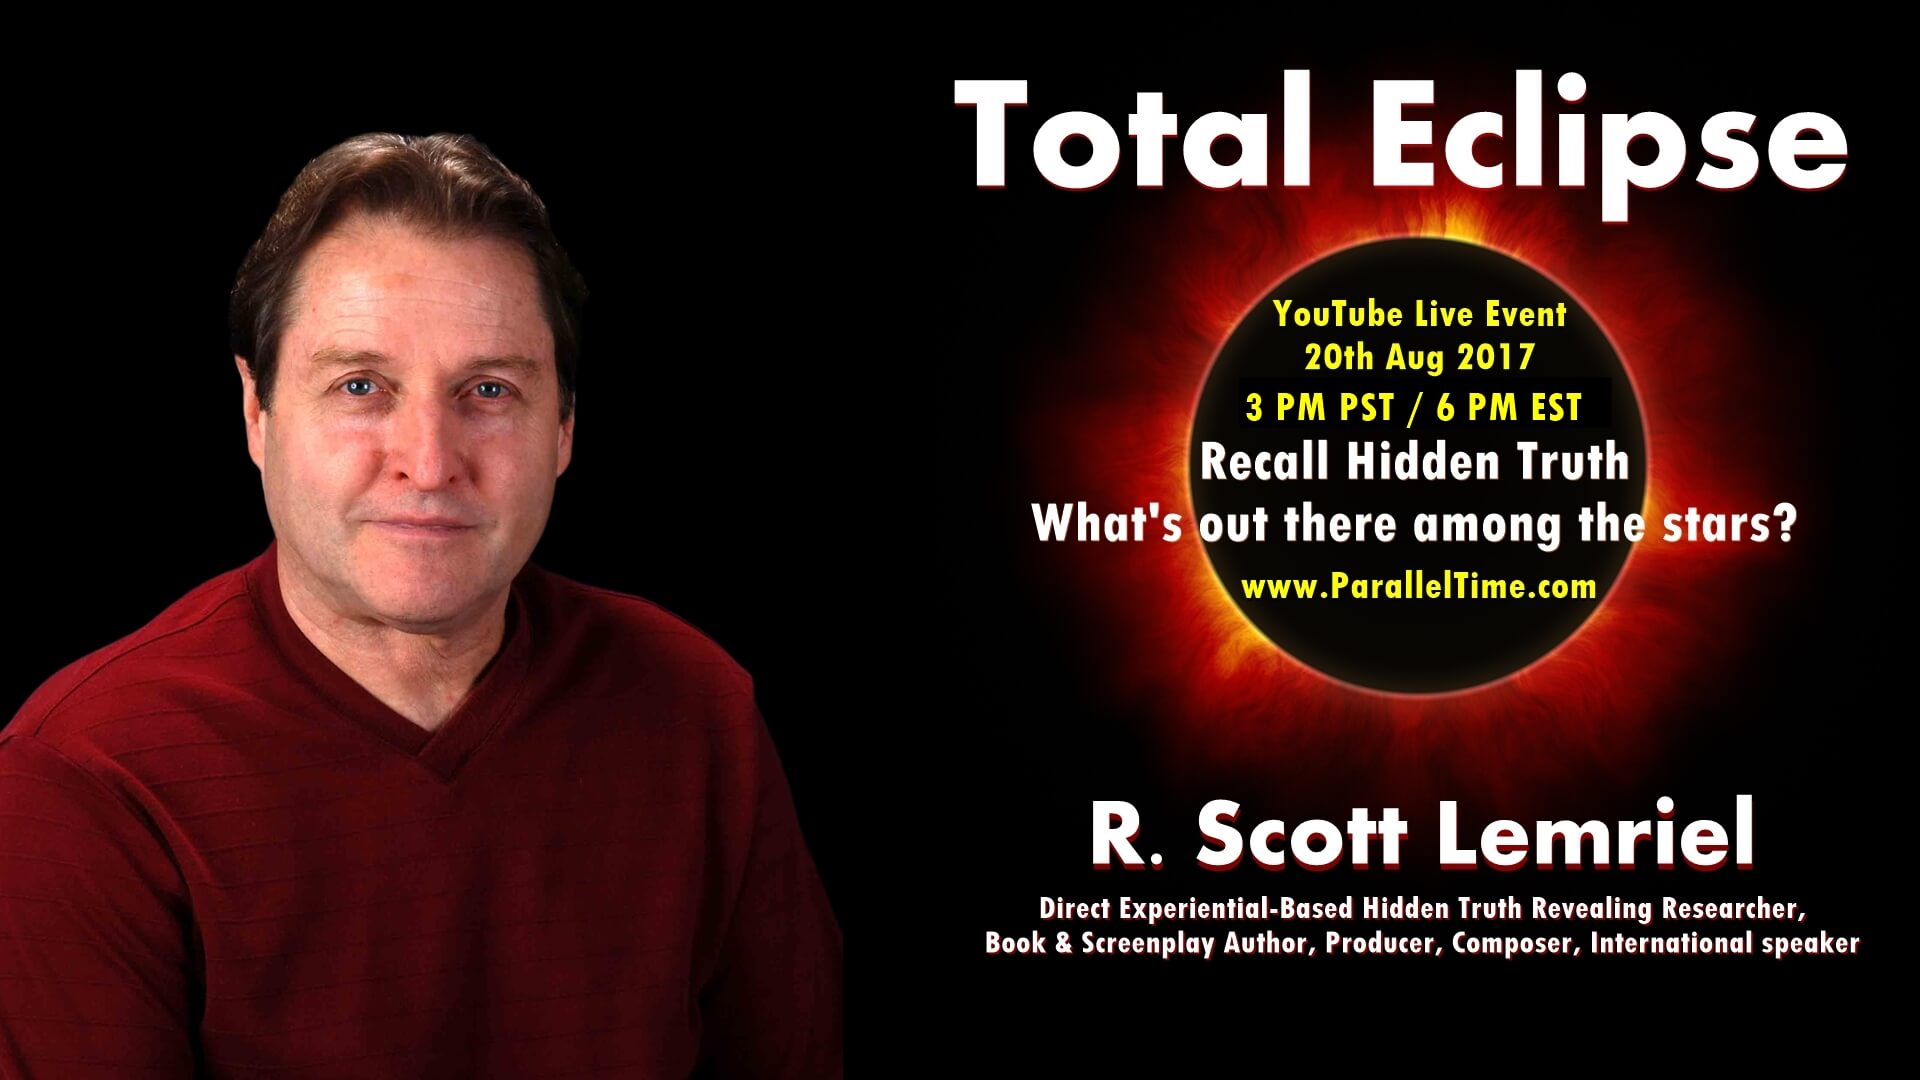 Solar Eclipse - Recall Hidden Truth - What's Among The Stars